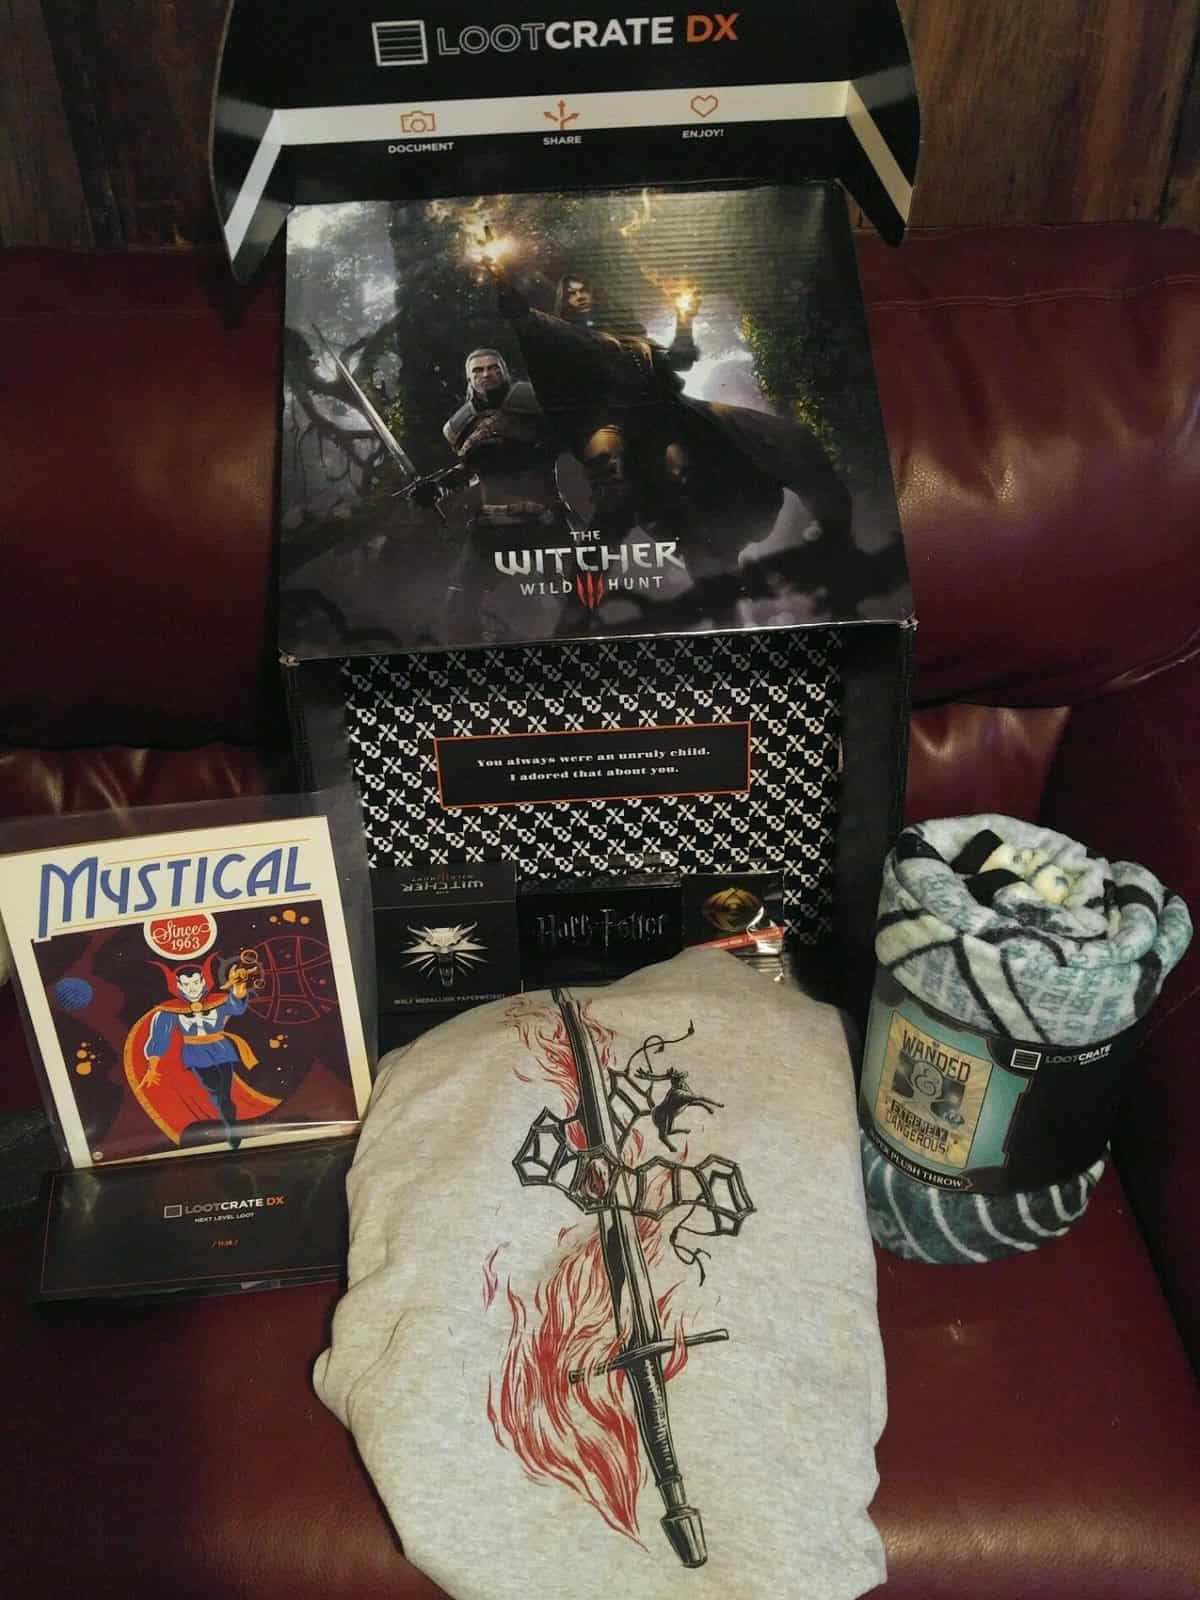 Loot Crate DX November 2016 Review - Box Contents